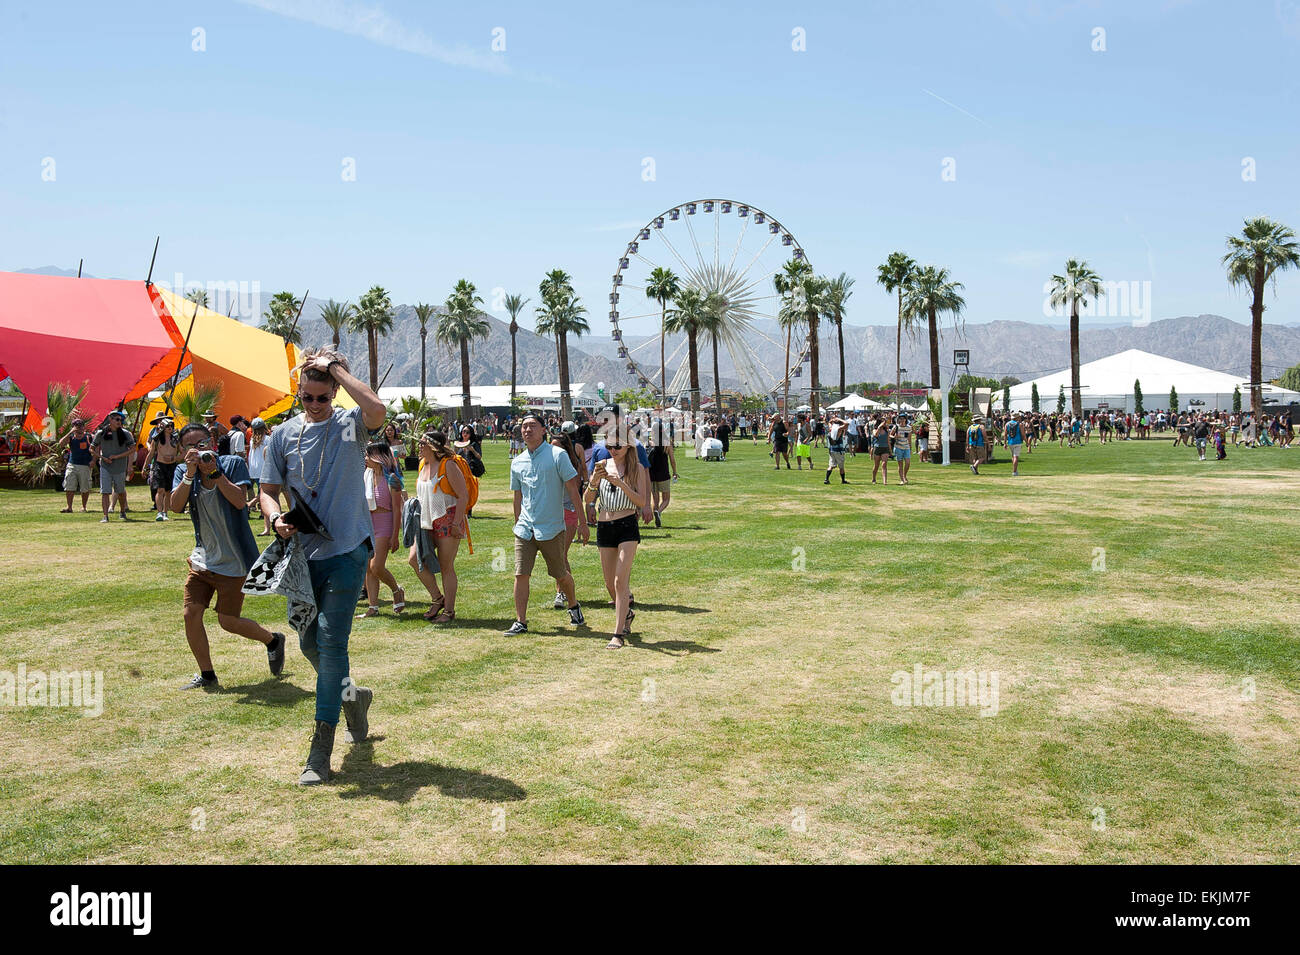 Indio, California, Estados Unidos. El 10 de abril, 2015. La atmósfera general del 2015 Coachella Music & Imagen De Stock